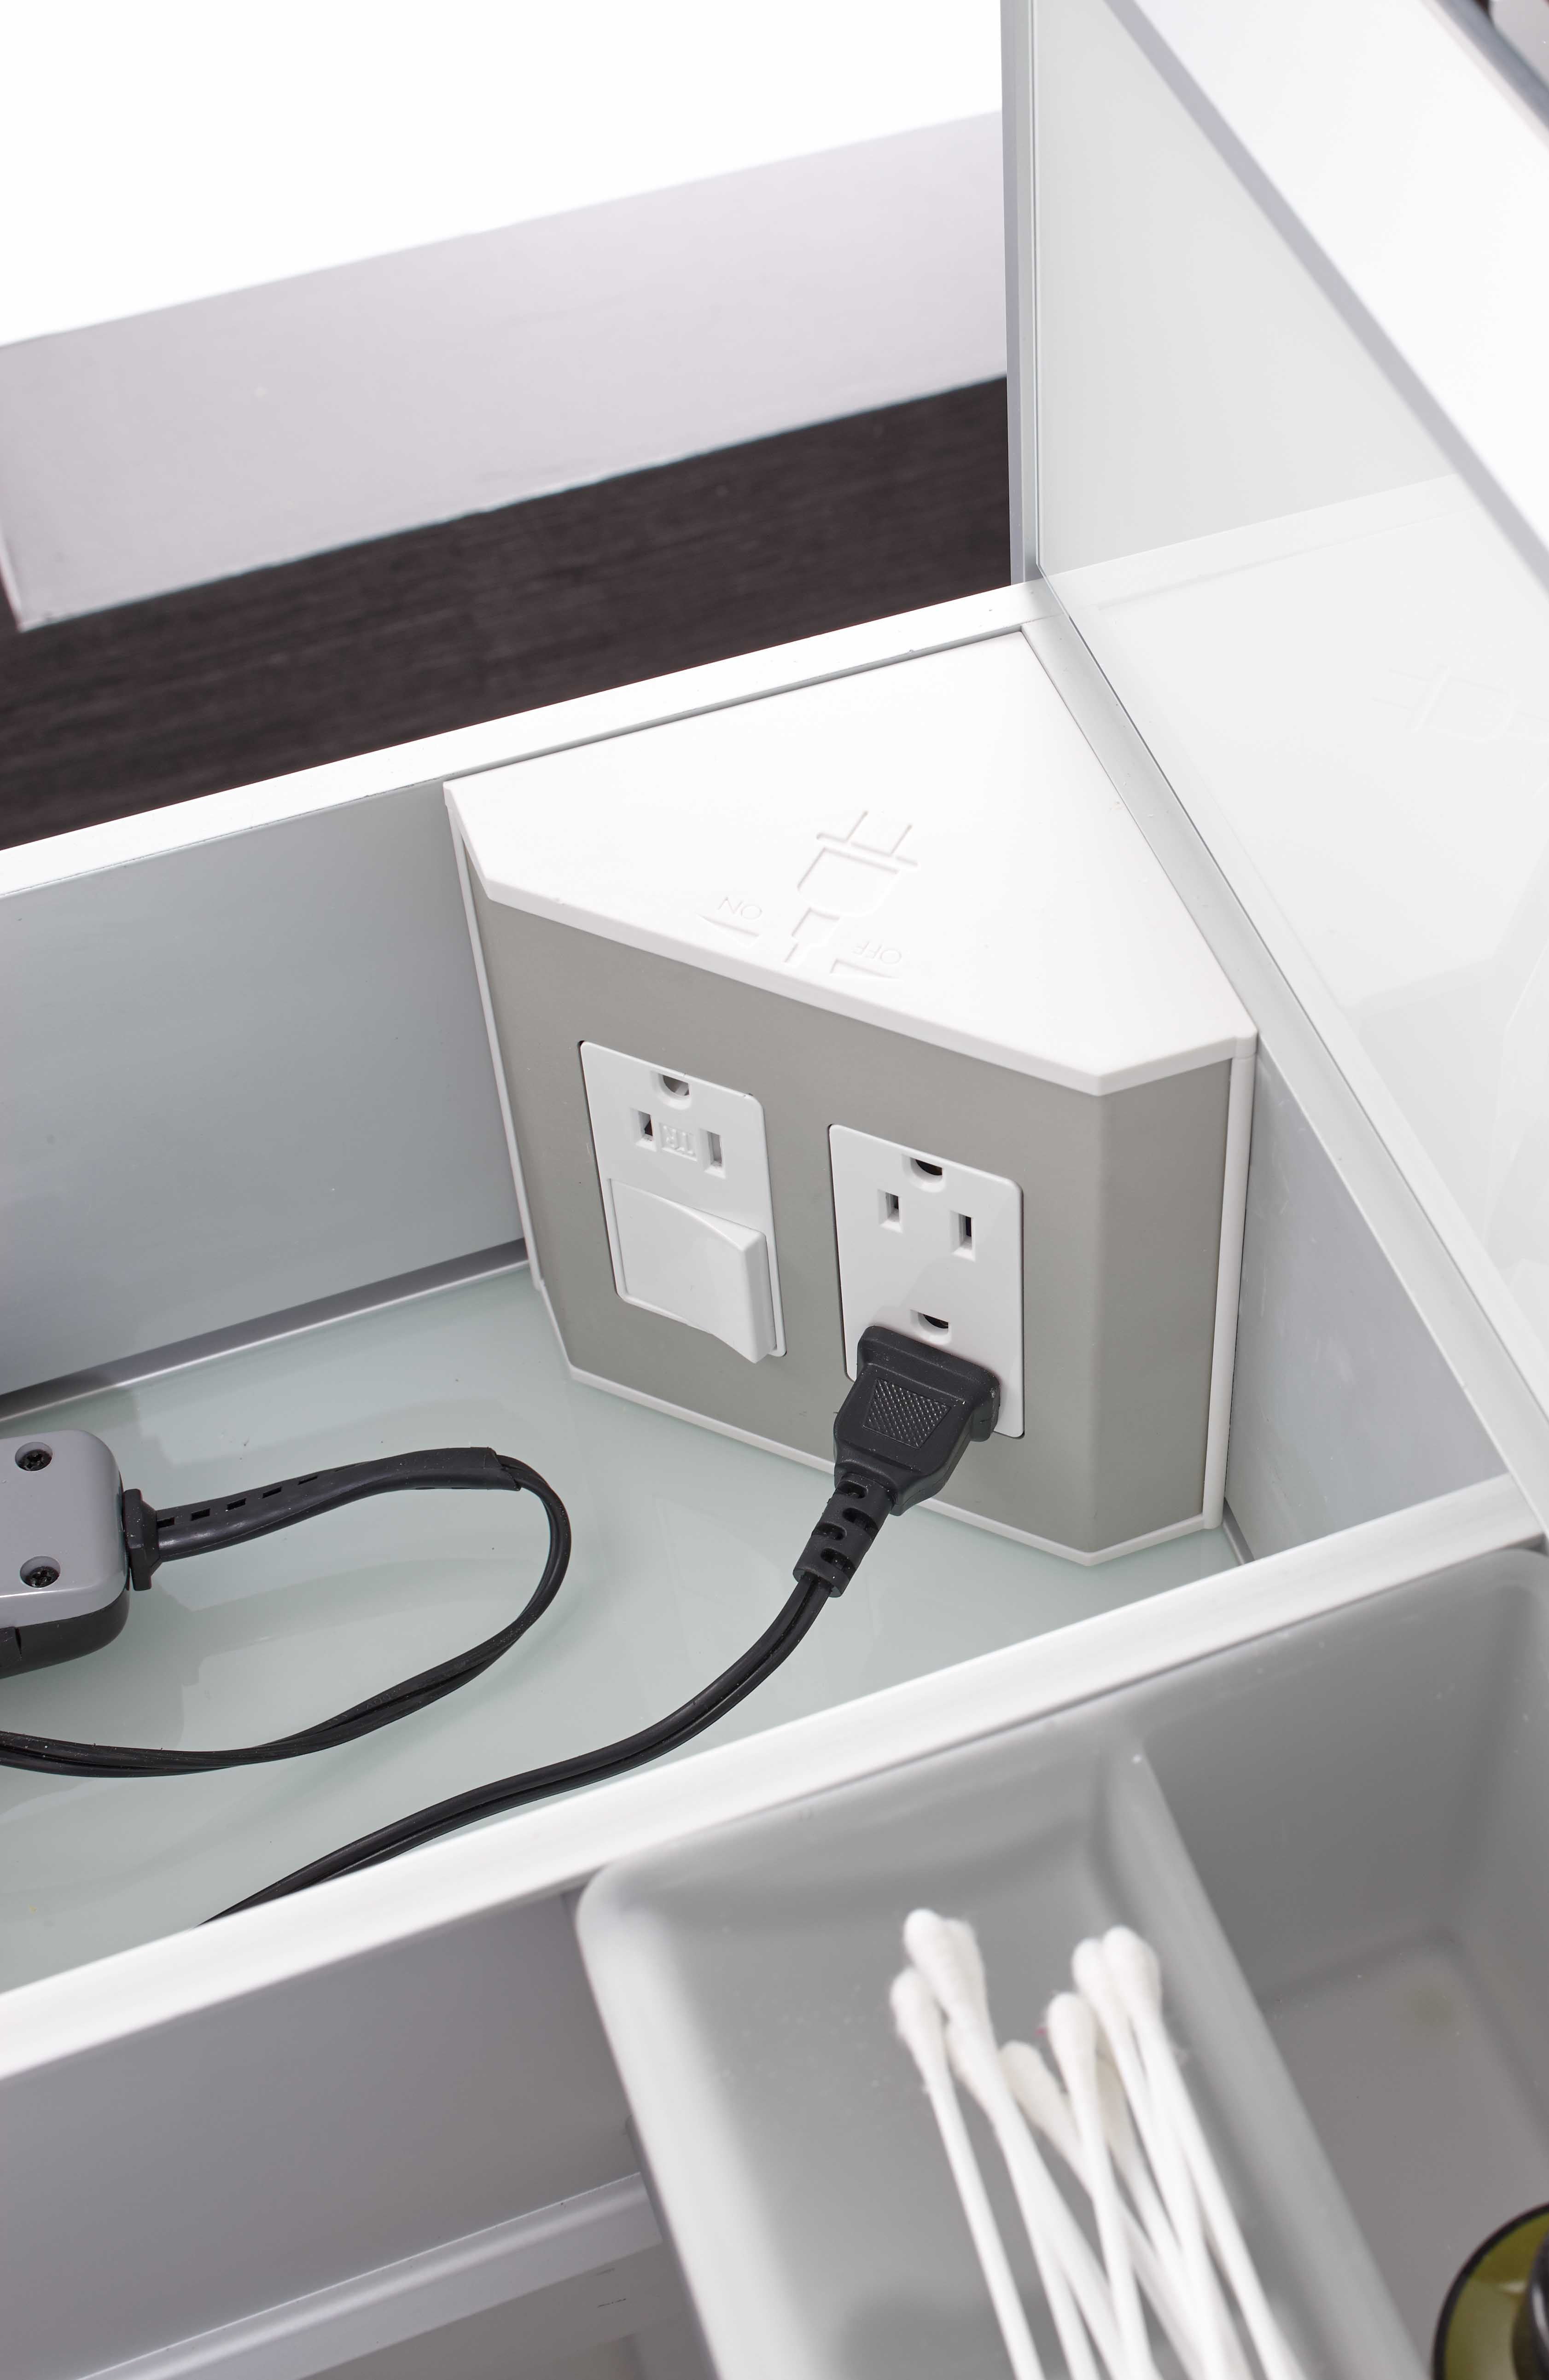 Vanity Light No Outlet Box : In-the-drawer electrical outlets for bathroom drawers & vanities NEW Products Pinterest ...